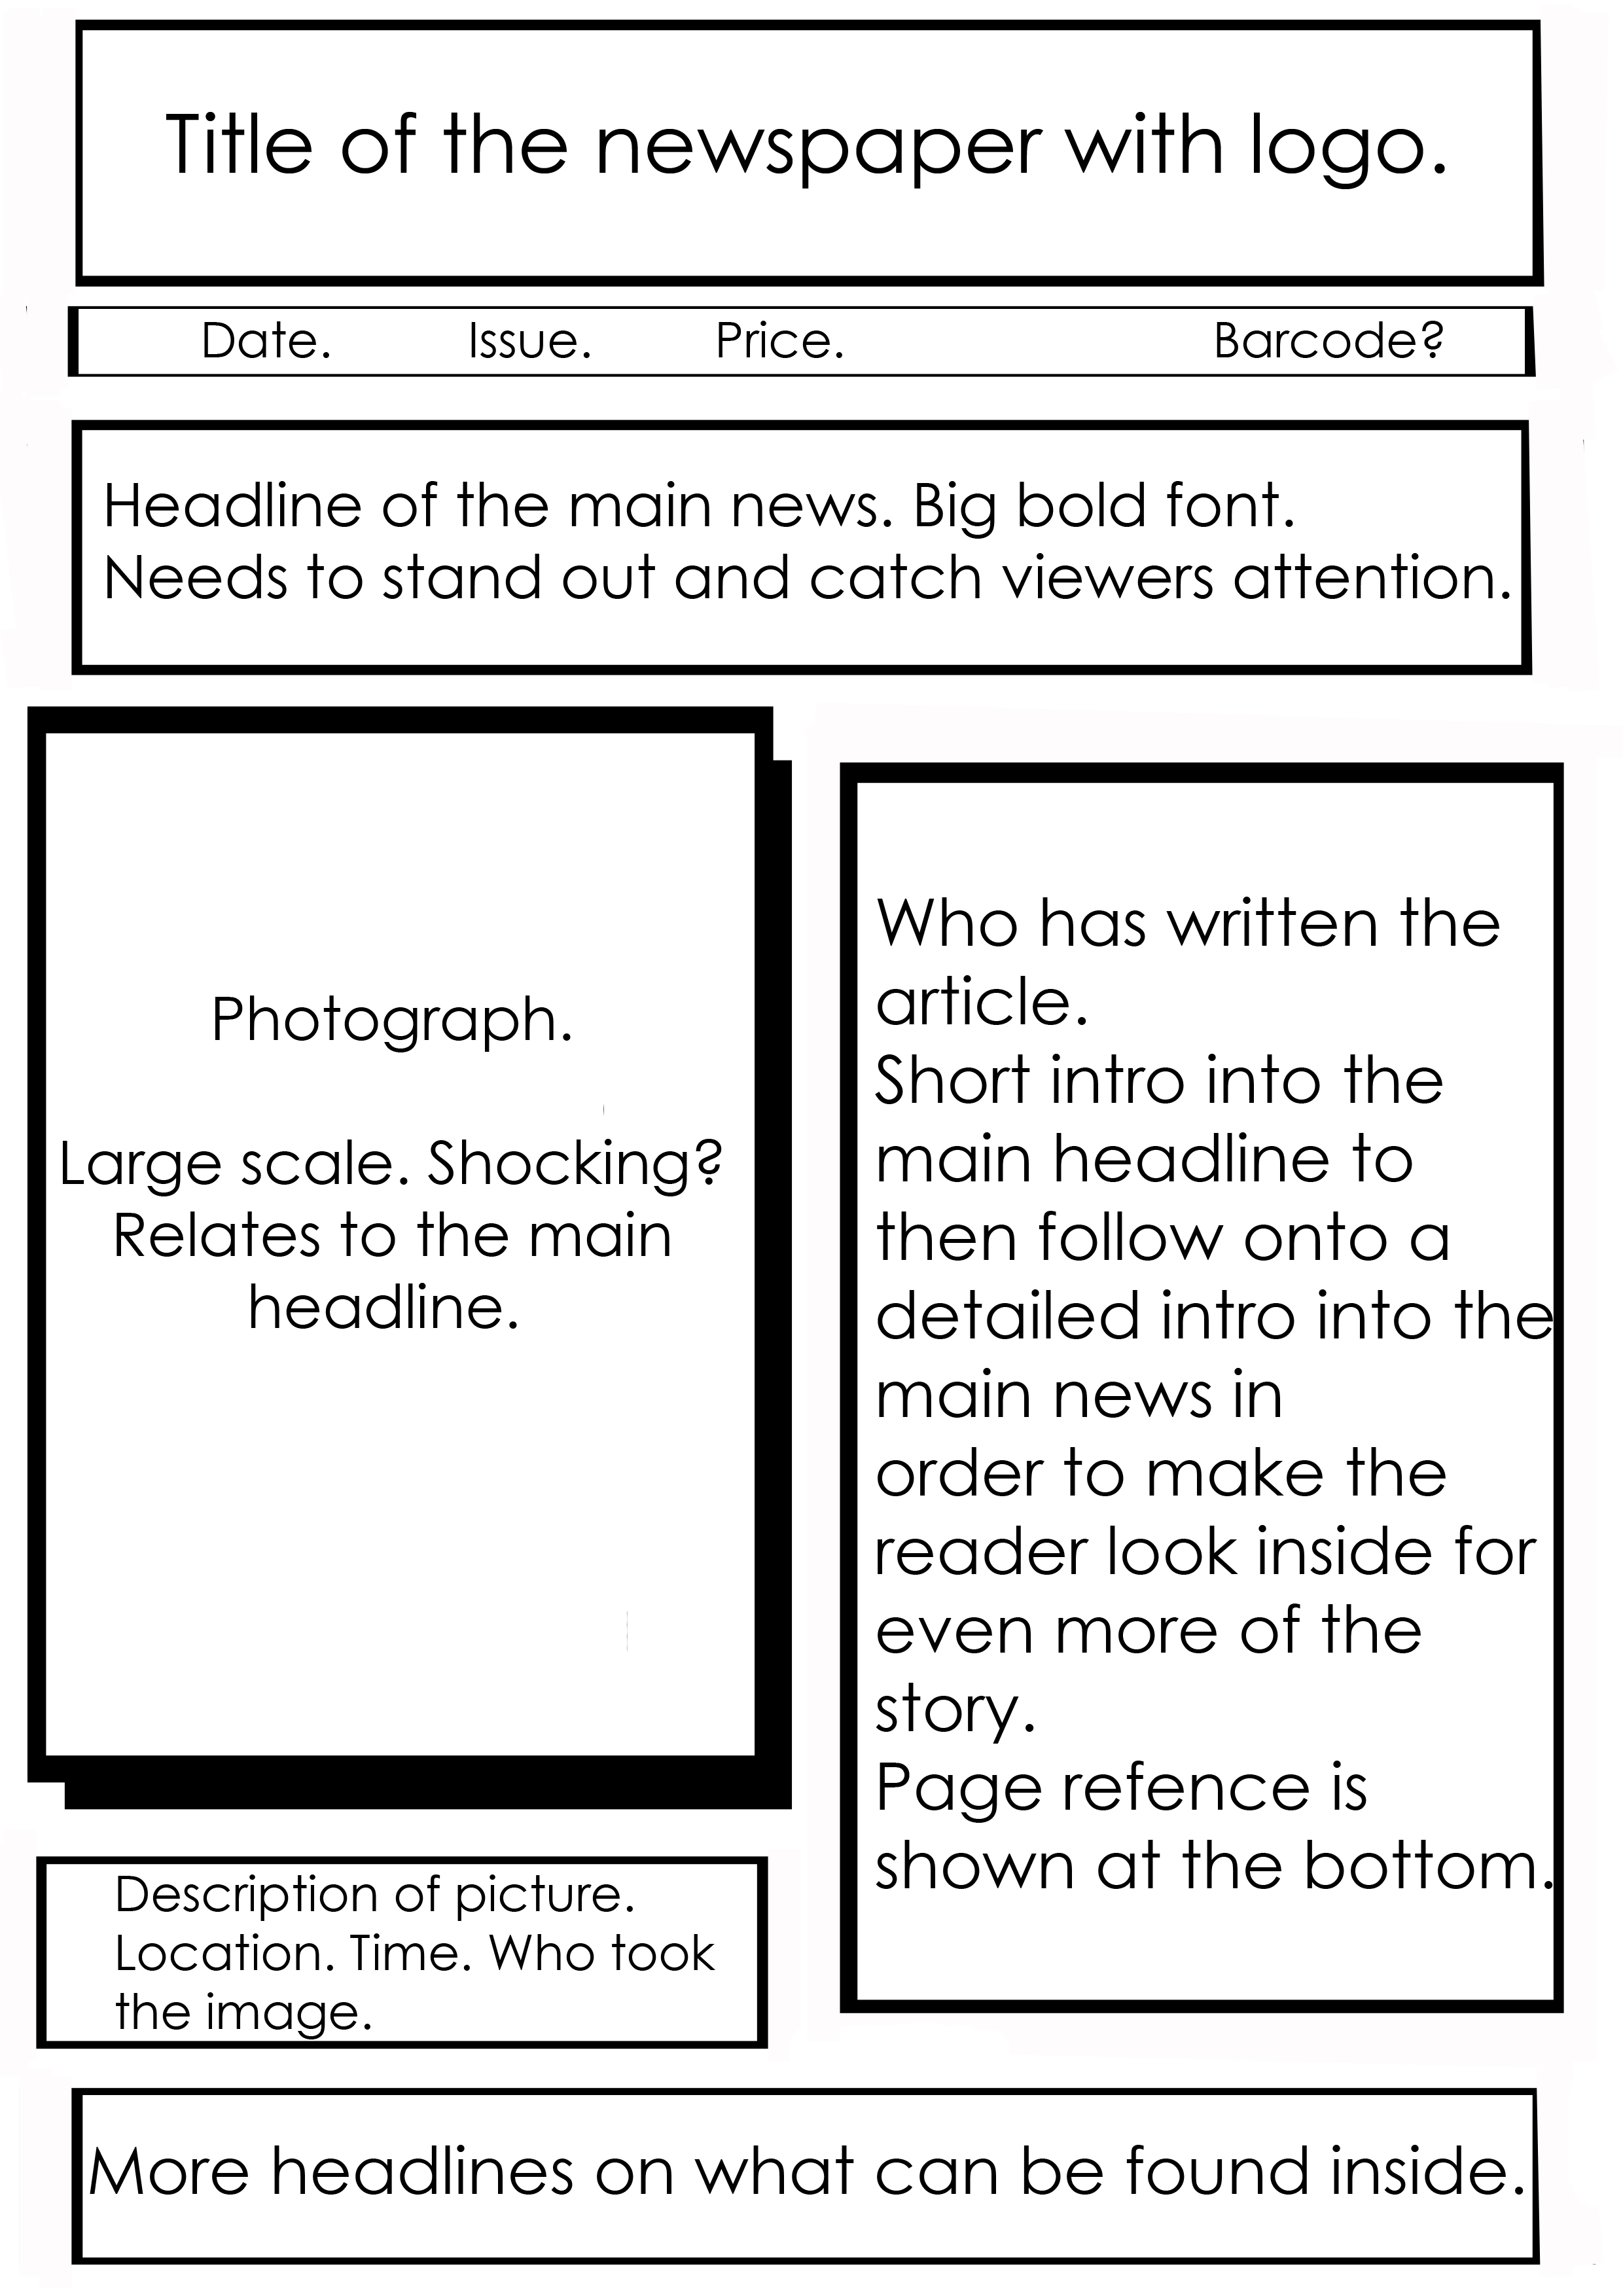 front page layout research paper Method, results, conclusion, and, if needed, future research in the paper  the paper • the page headers should be at the top of the page.